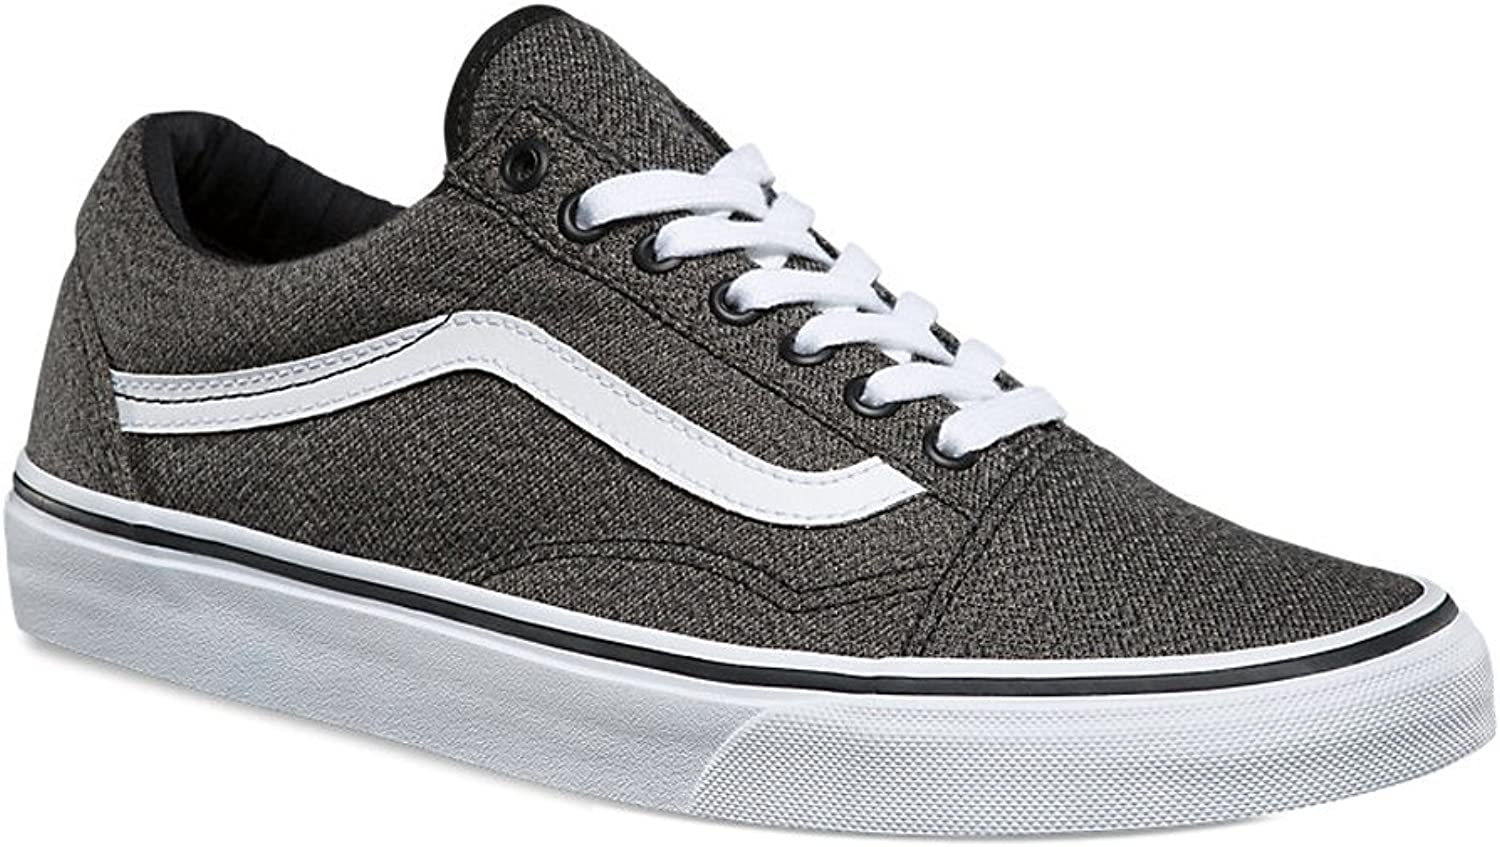 Vans Old Skool Navy (VN000D3HNVY)